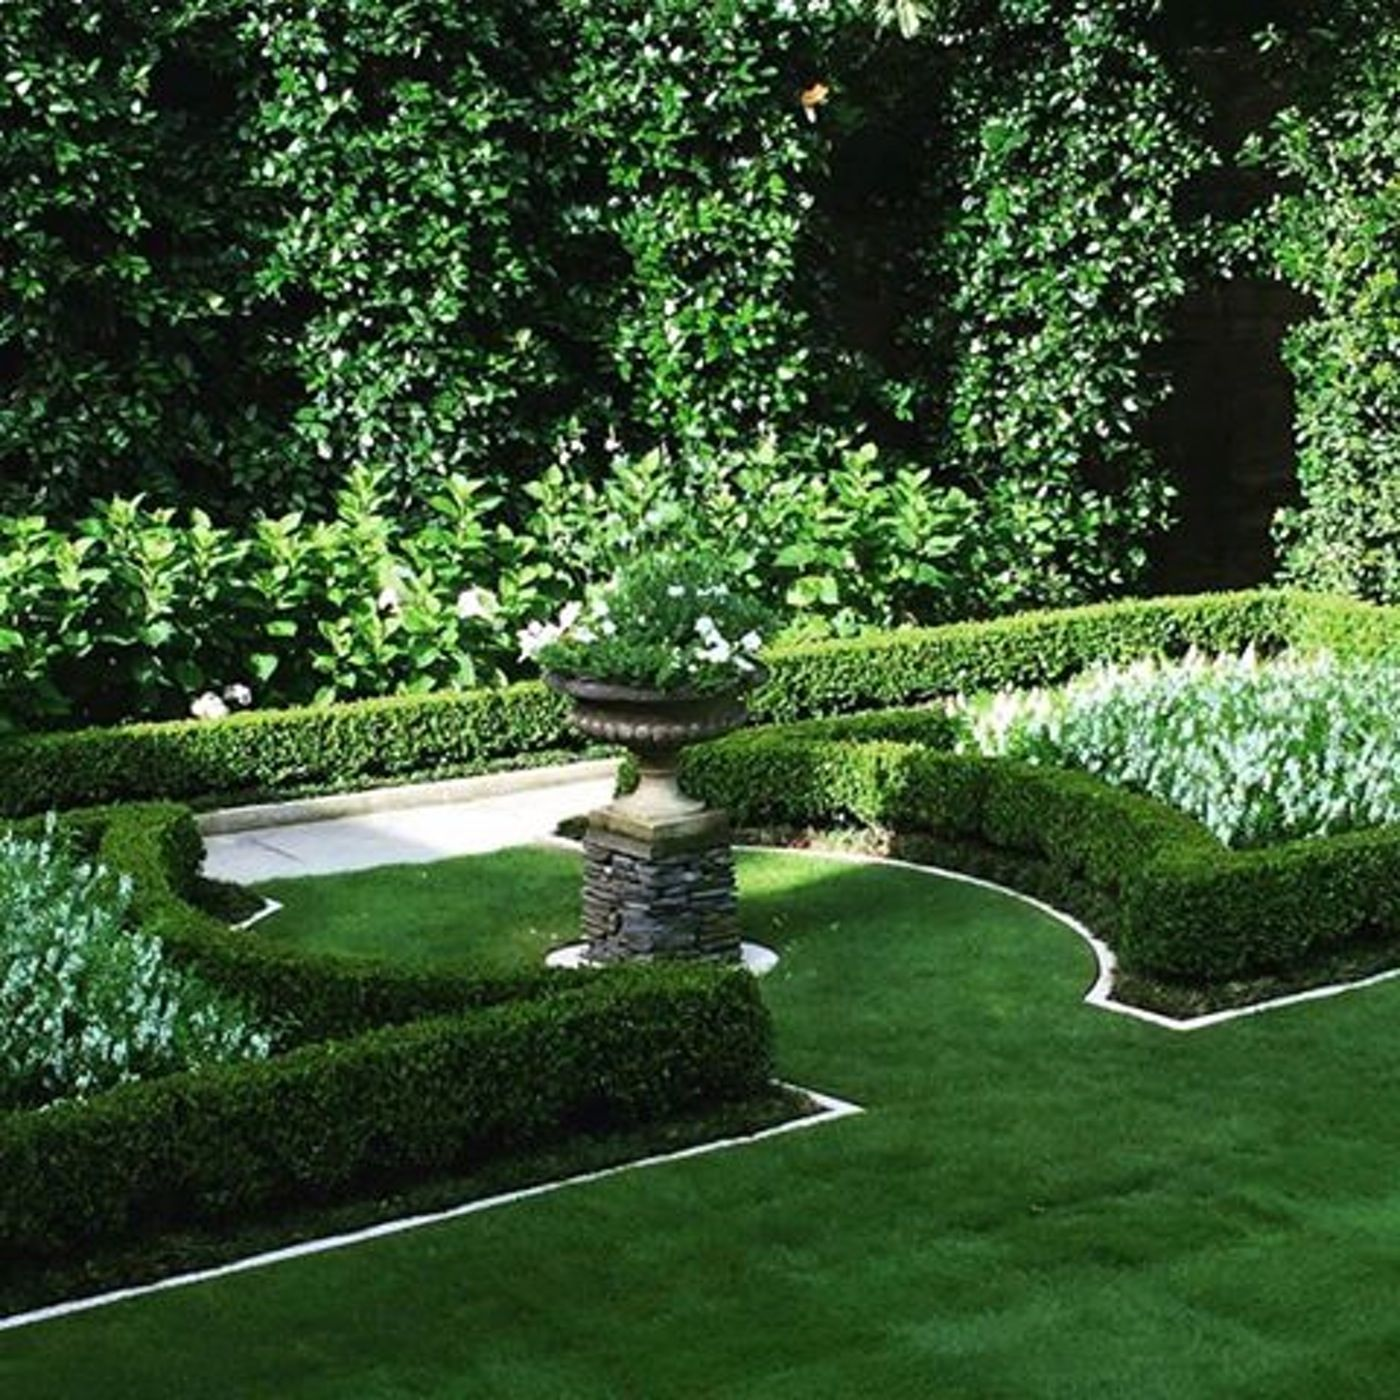 parterres enclose an oval of grass and an urn on a pedestal this